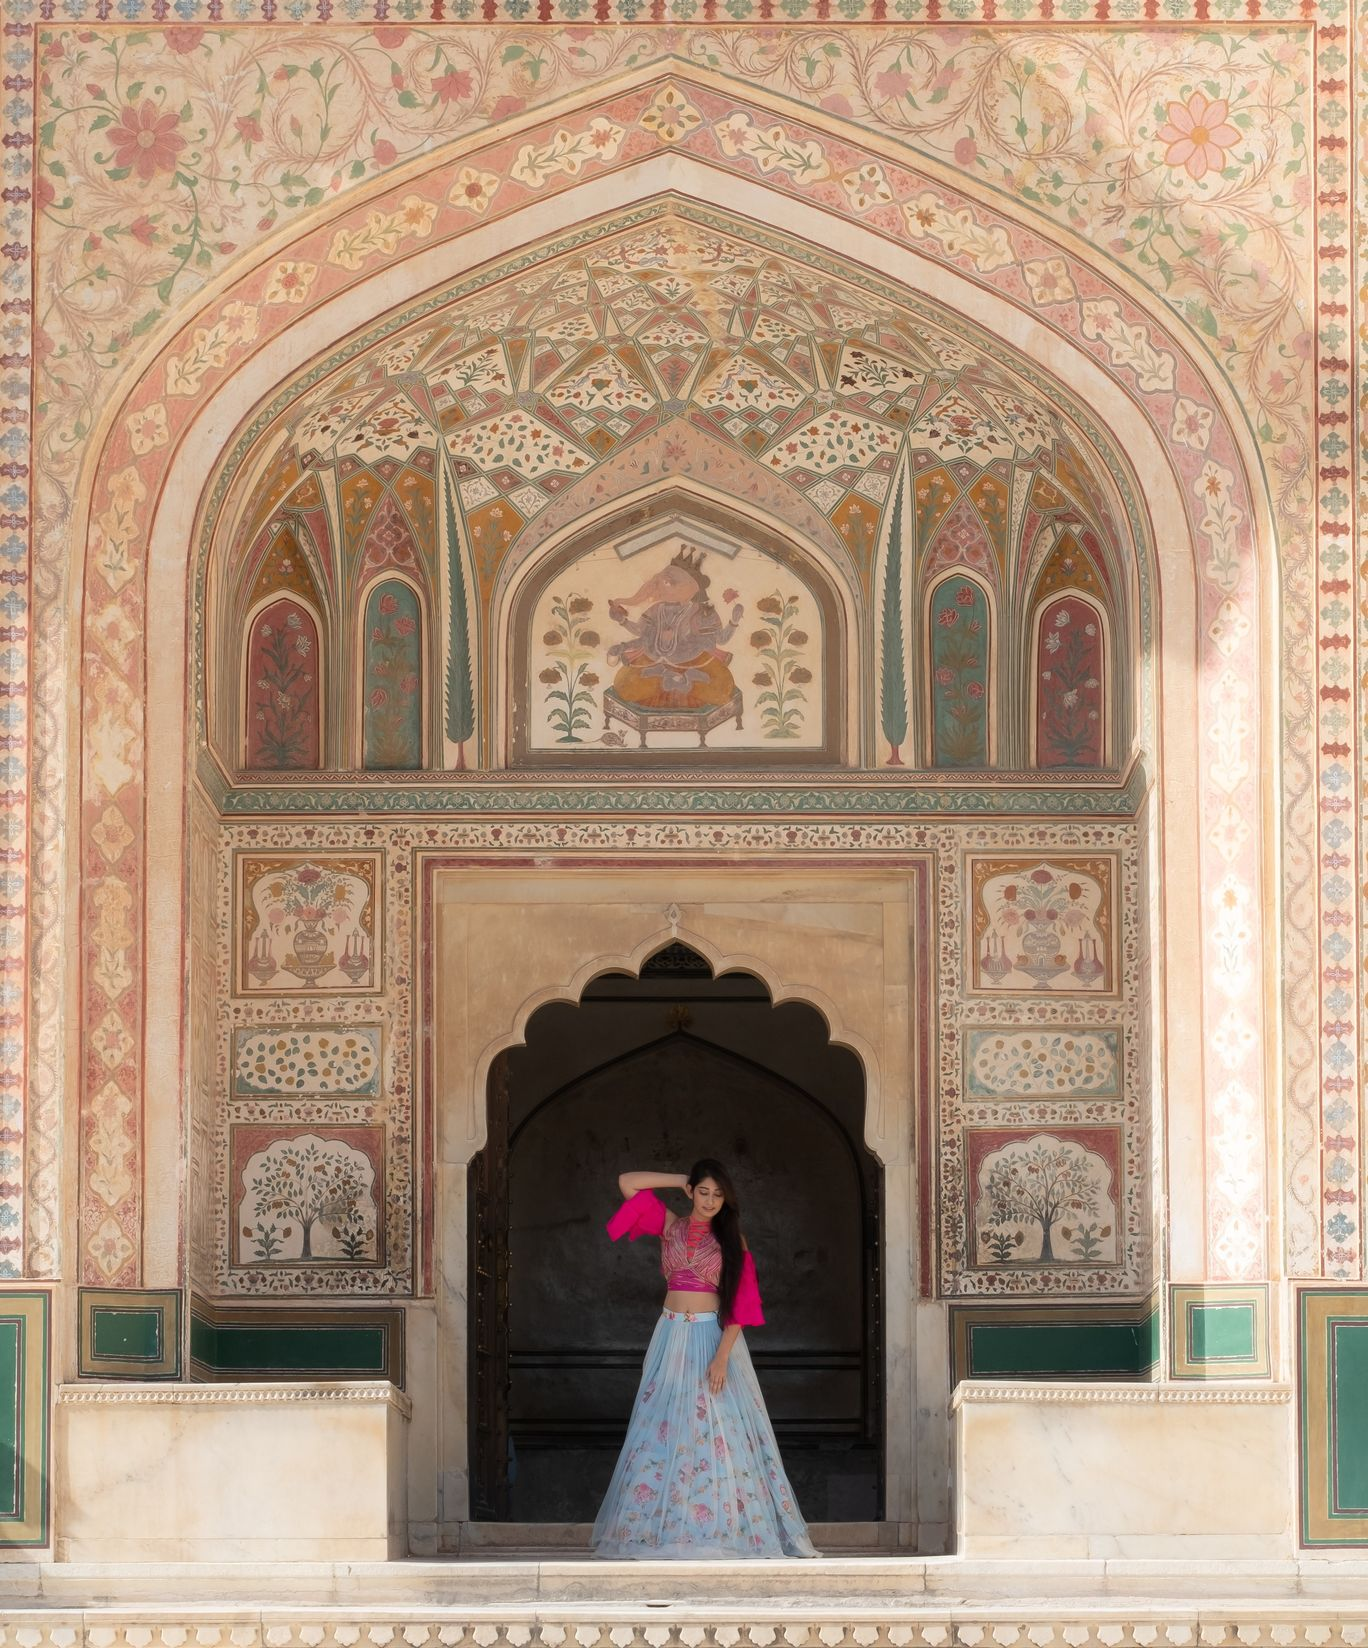 Photo of amer Fort By Rahul Kumar